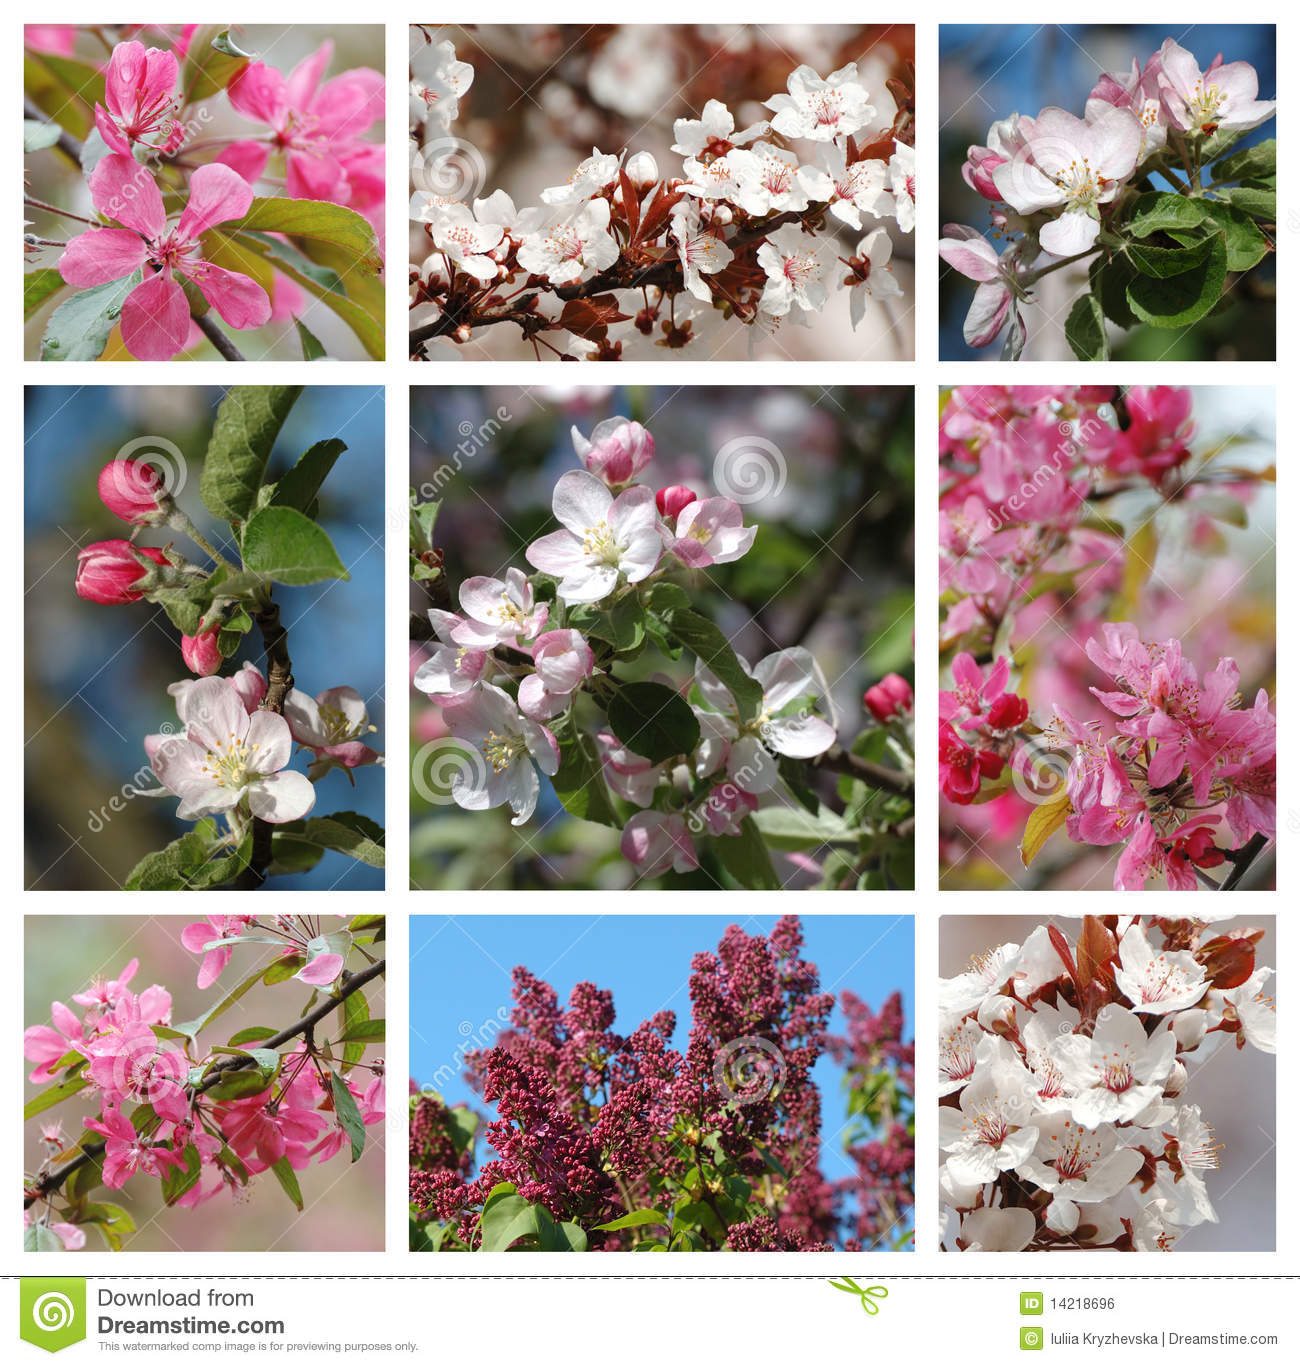 Wedding Flowers For May Season : Spring season nature collage with flowers royalty free